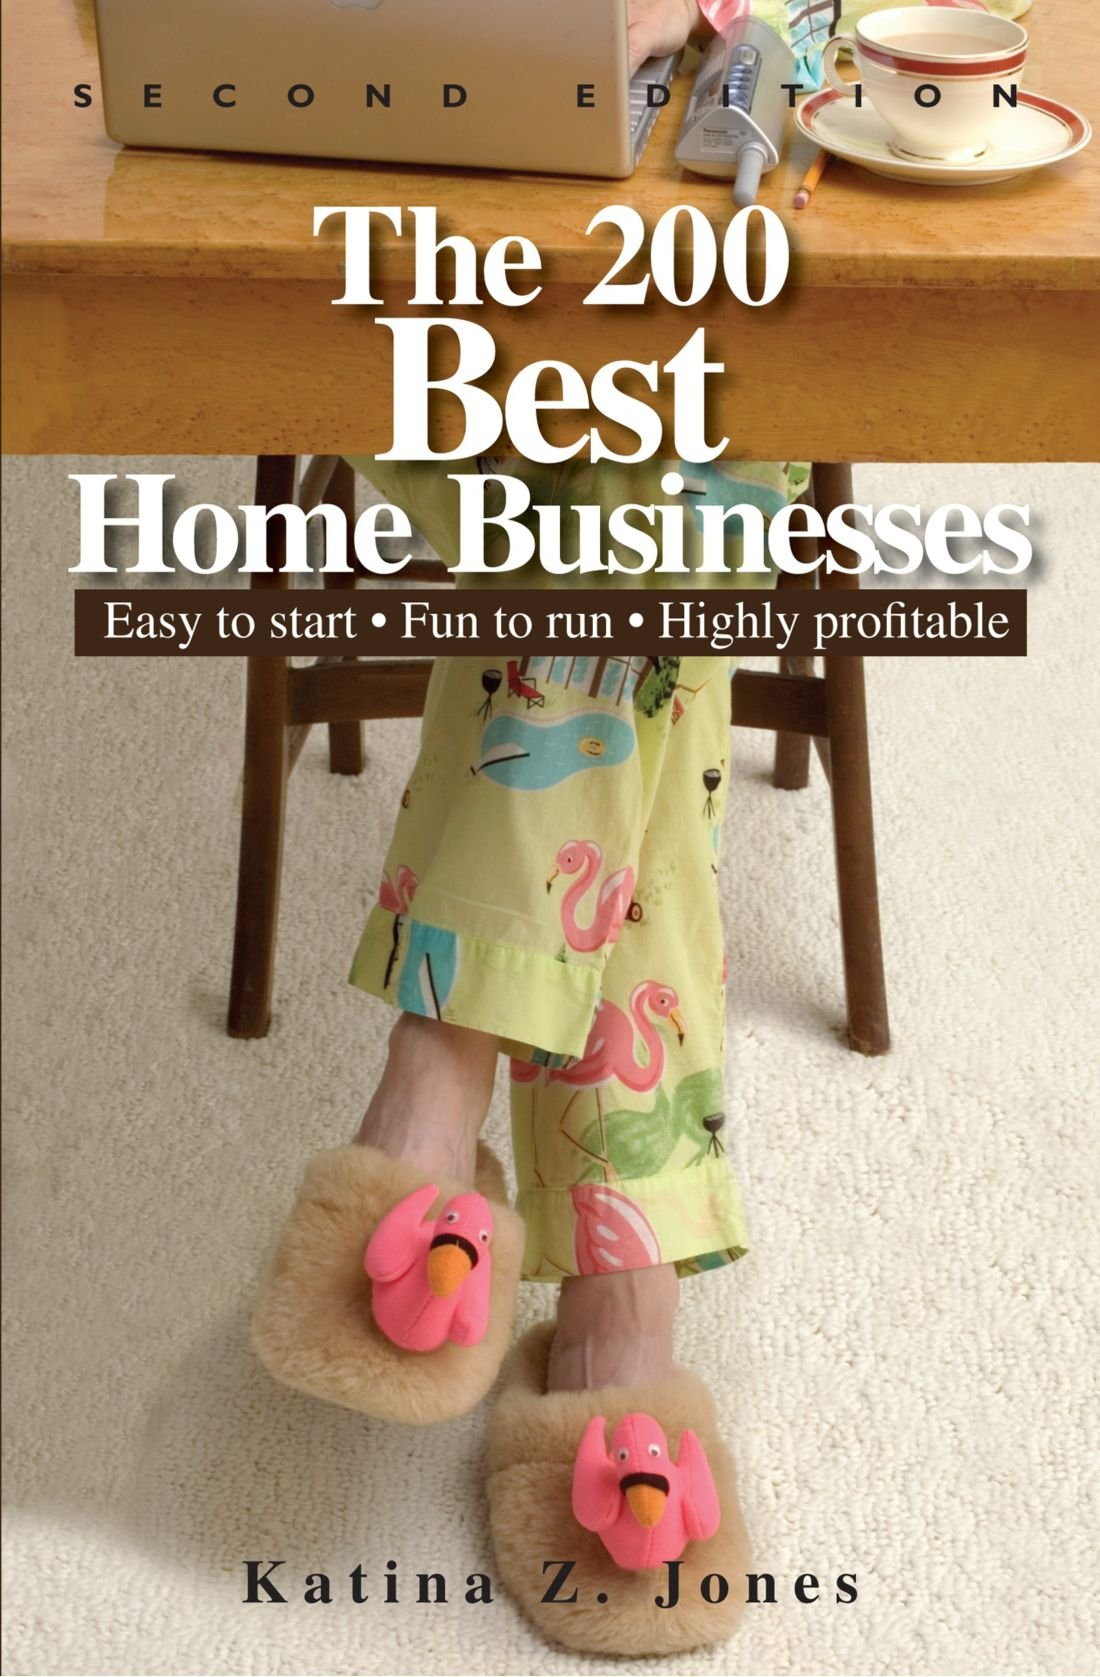 The 200 Best Home Businesses: Easy To Start, Fun To Run, Highly Profitable pdf